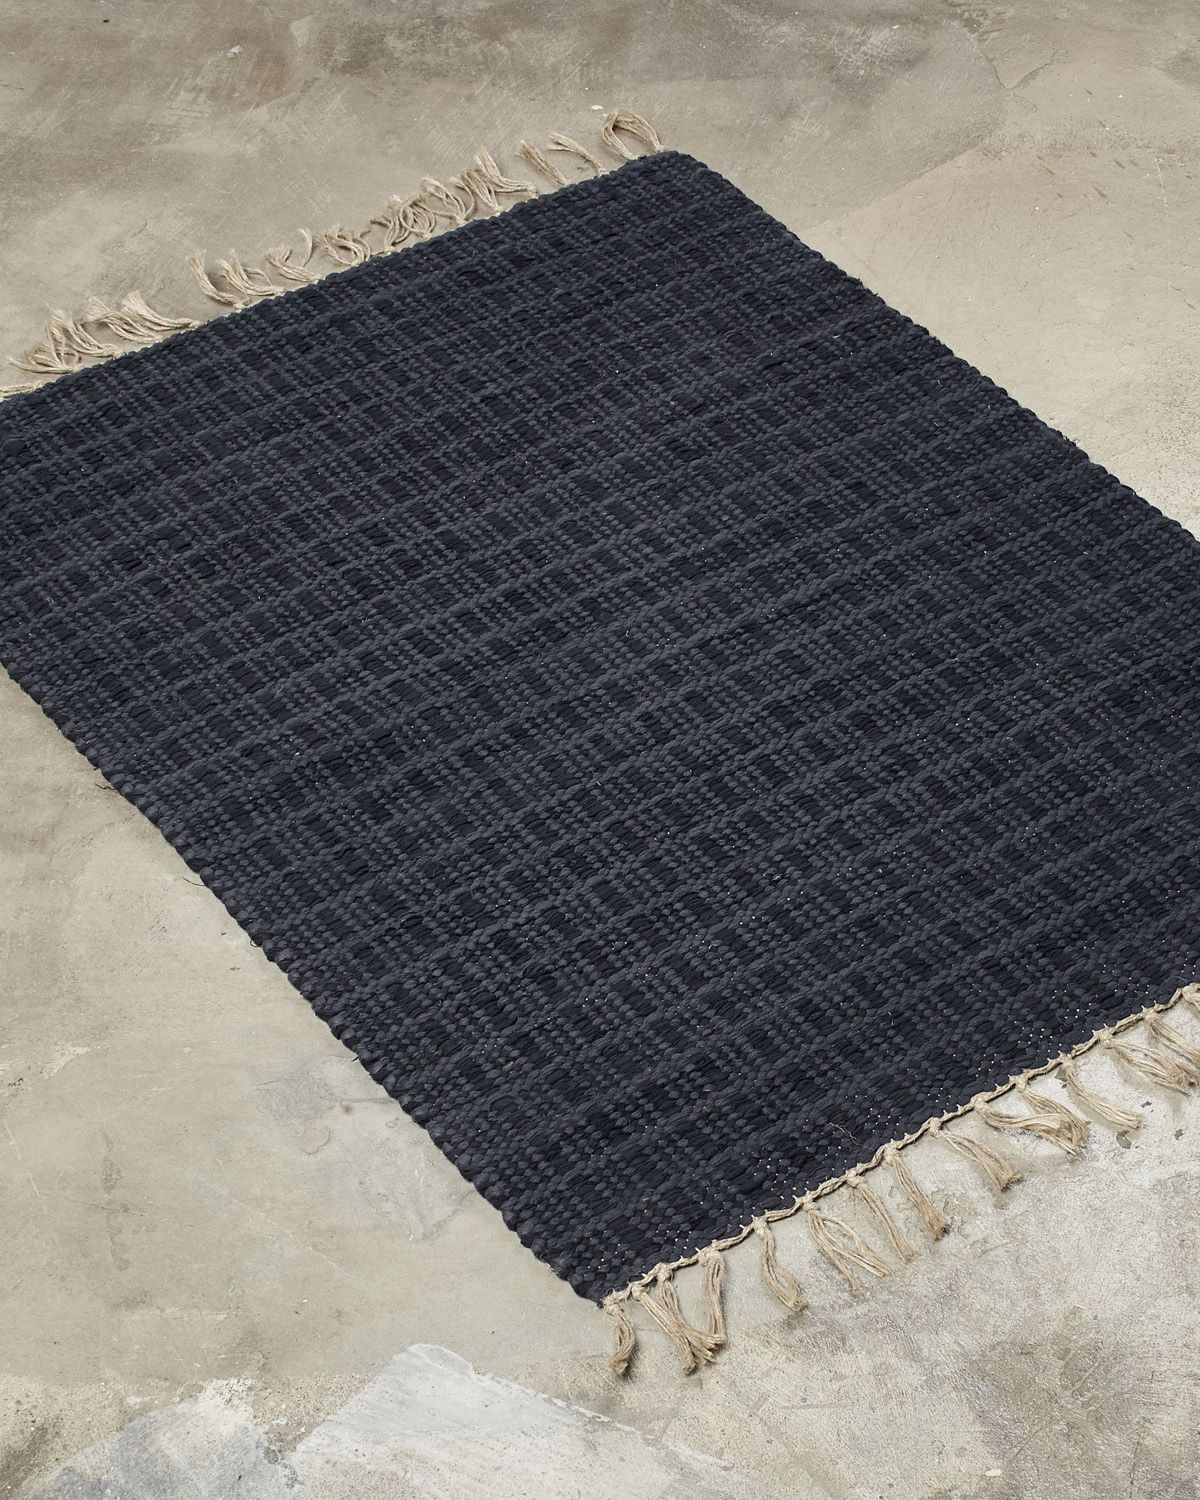 LITTLE-RUUTU rug one of our classics. It withstands time and suits many design styles. Play with harmony and contrast.